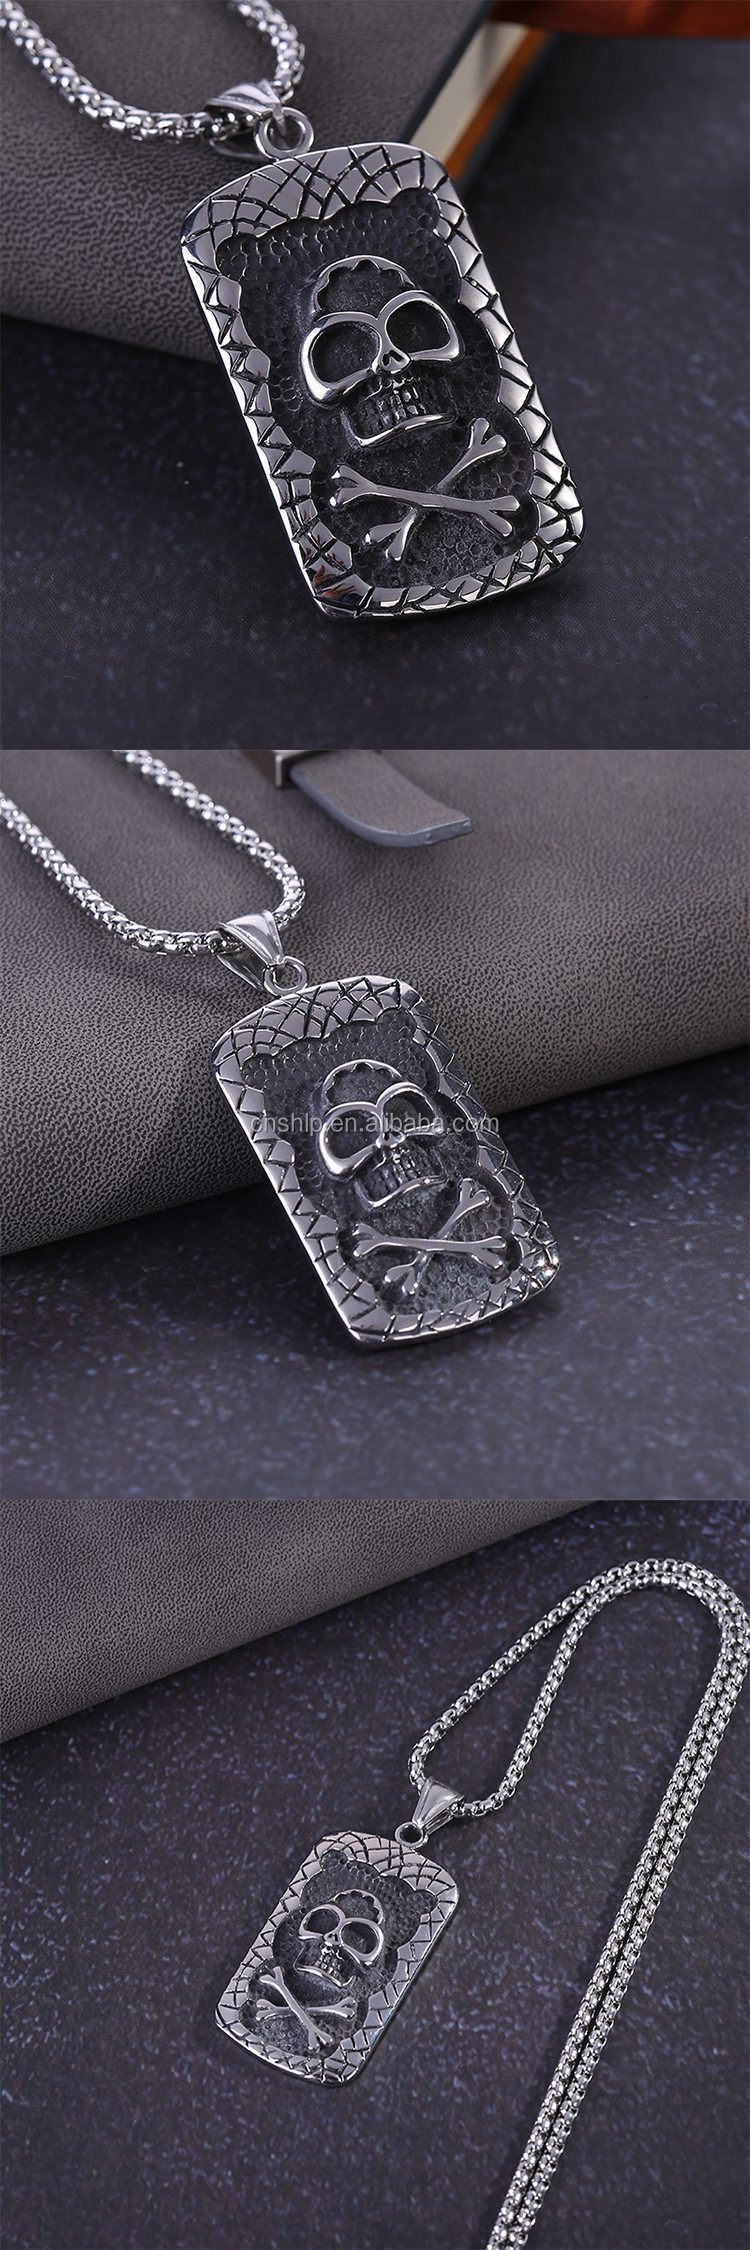 Custom metal 3d engraved logo dog tag with necklace